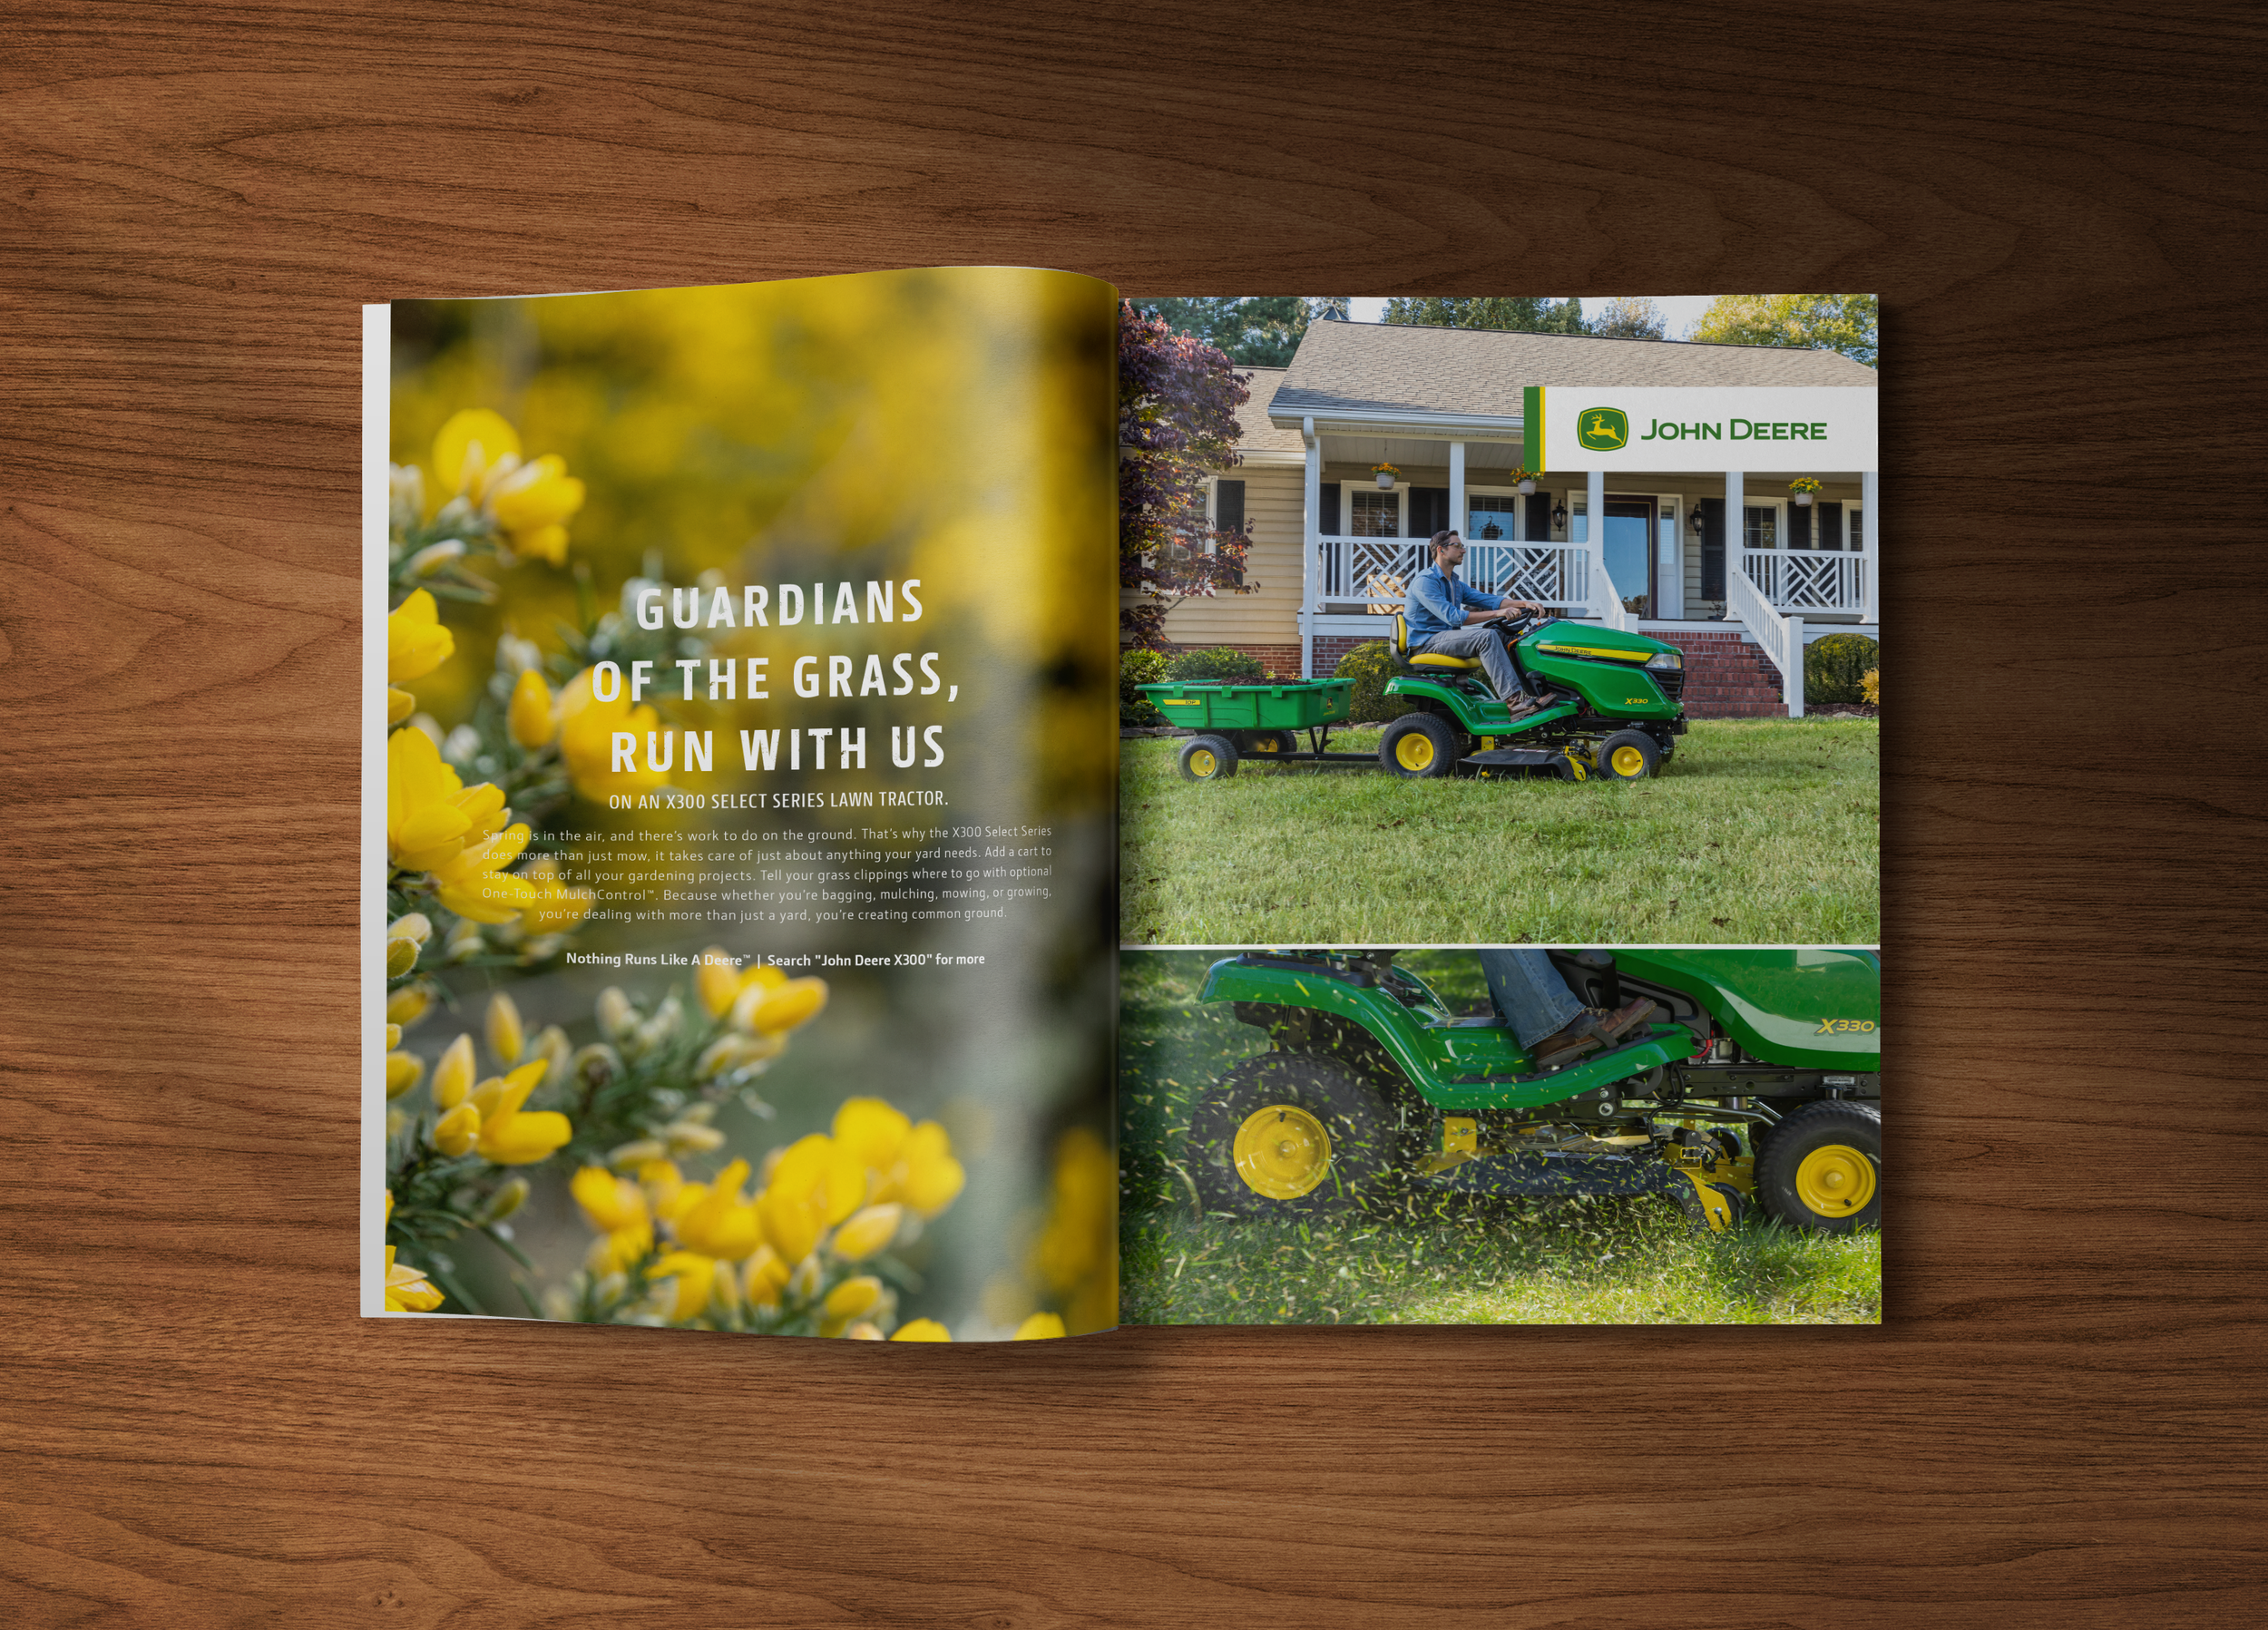 """HEADLINE:  Guardians Of The Grass, Run With Us  SUBHEAD:  On an X300 Select Series Lawn Tractor.  BODY:  Spring is in the air, and there's work to do on the ground. That's why the X300 Select Series does more than just mow, it takes care of just about anything your yard needs. Add a cart to stay on top of all your gardening projects. Tell your grass clippings where to go with optional One-Touch MulchControl™. Because whether you're bagging, mulching, mowing, or growing, you're dealing with more than just a yard, you're creating common ground.  TAG:  Nothing Runs Like A Deere™  CTA:  Search """"John Deere X300"""" for more."""